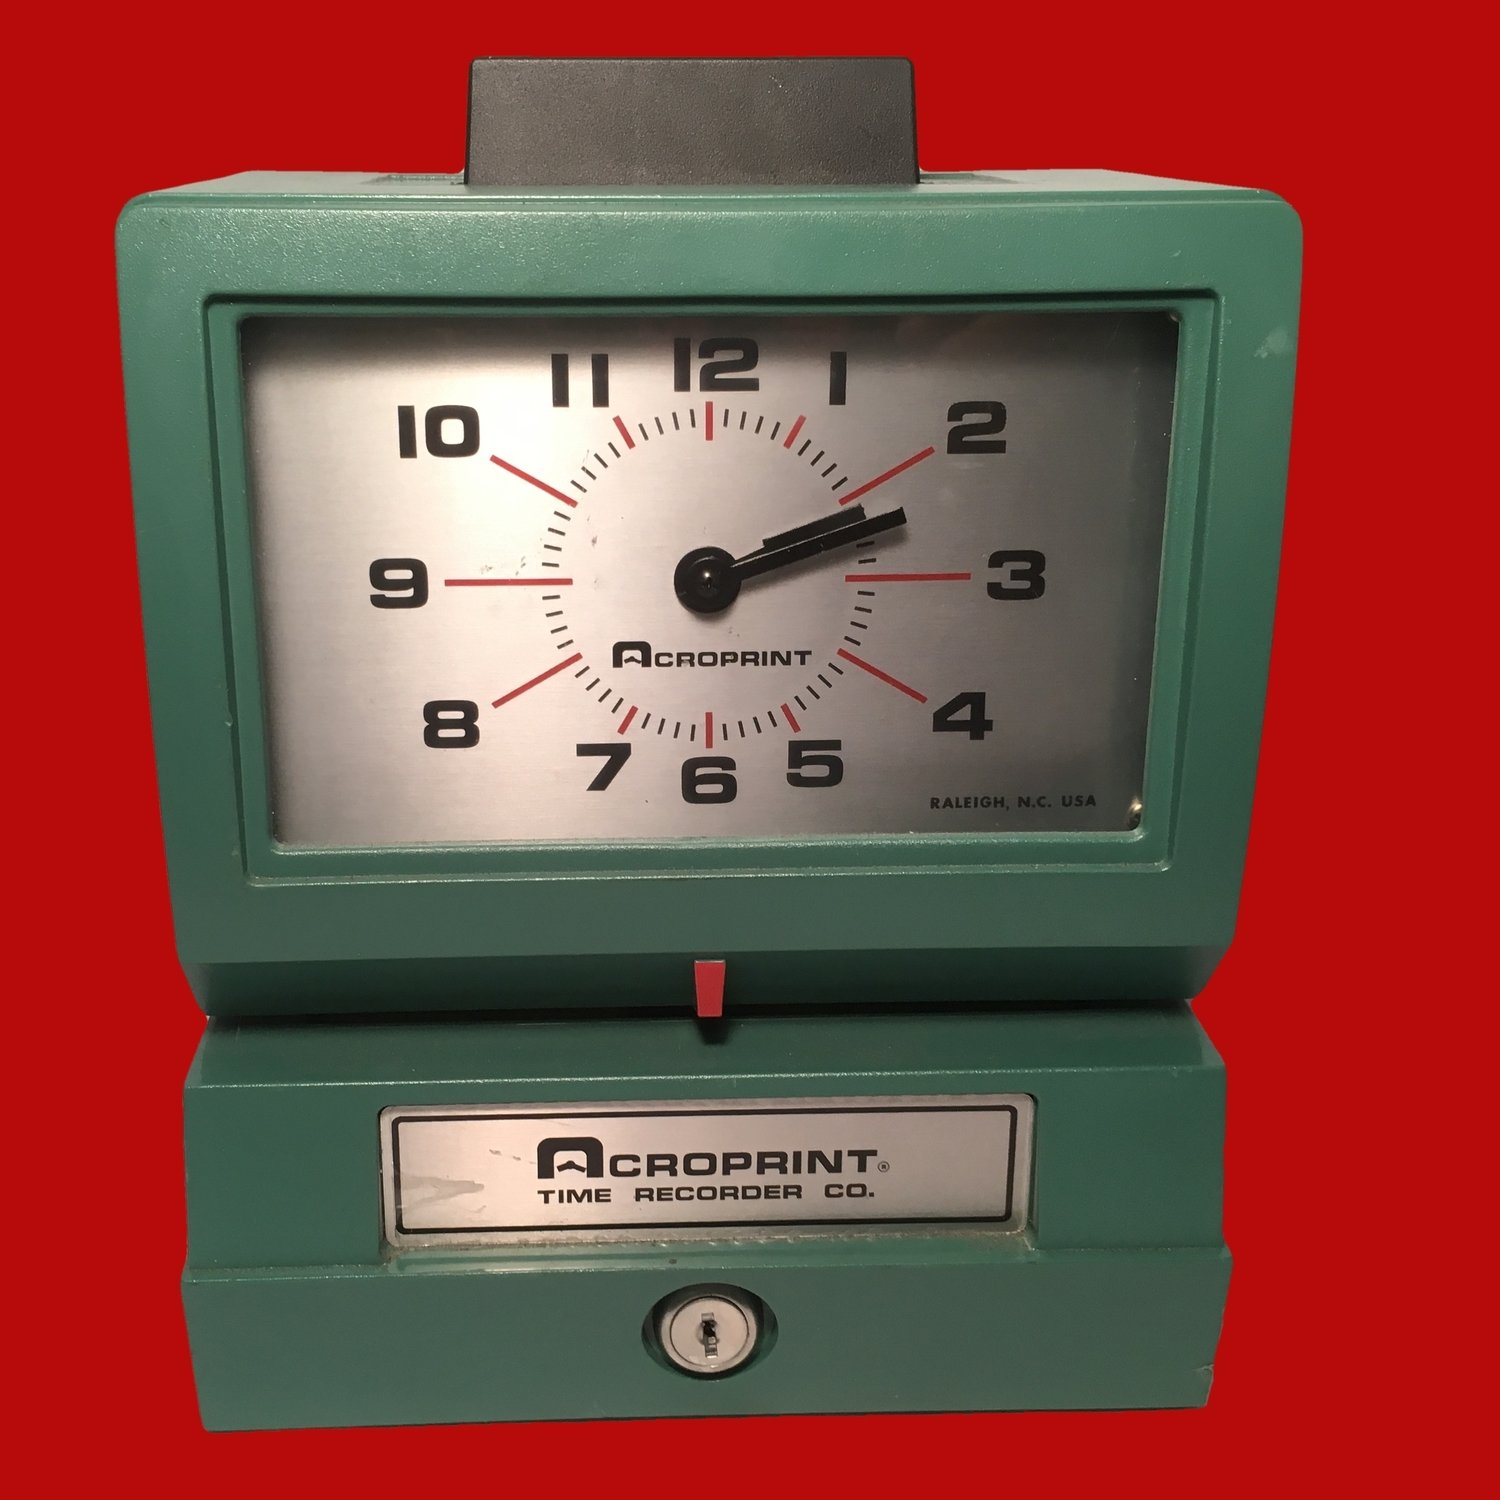 Working Electric Timeclock - Shelf Candy or for Work